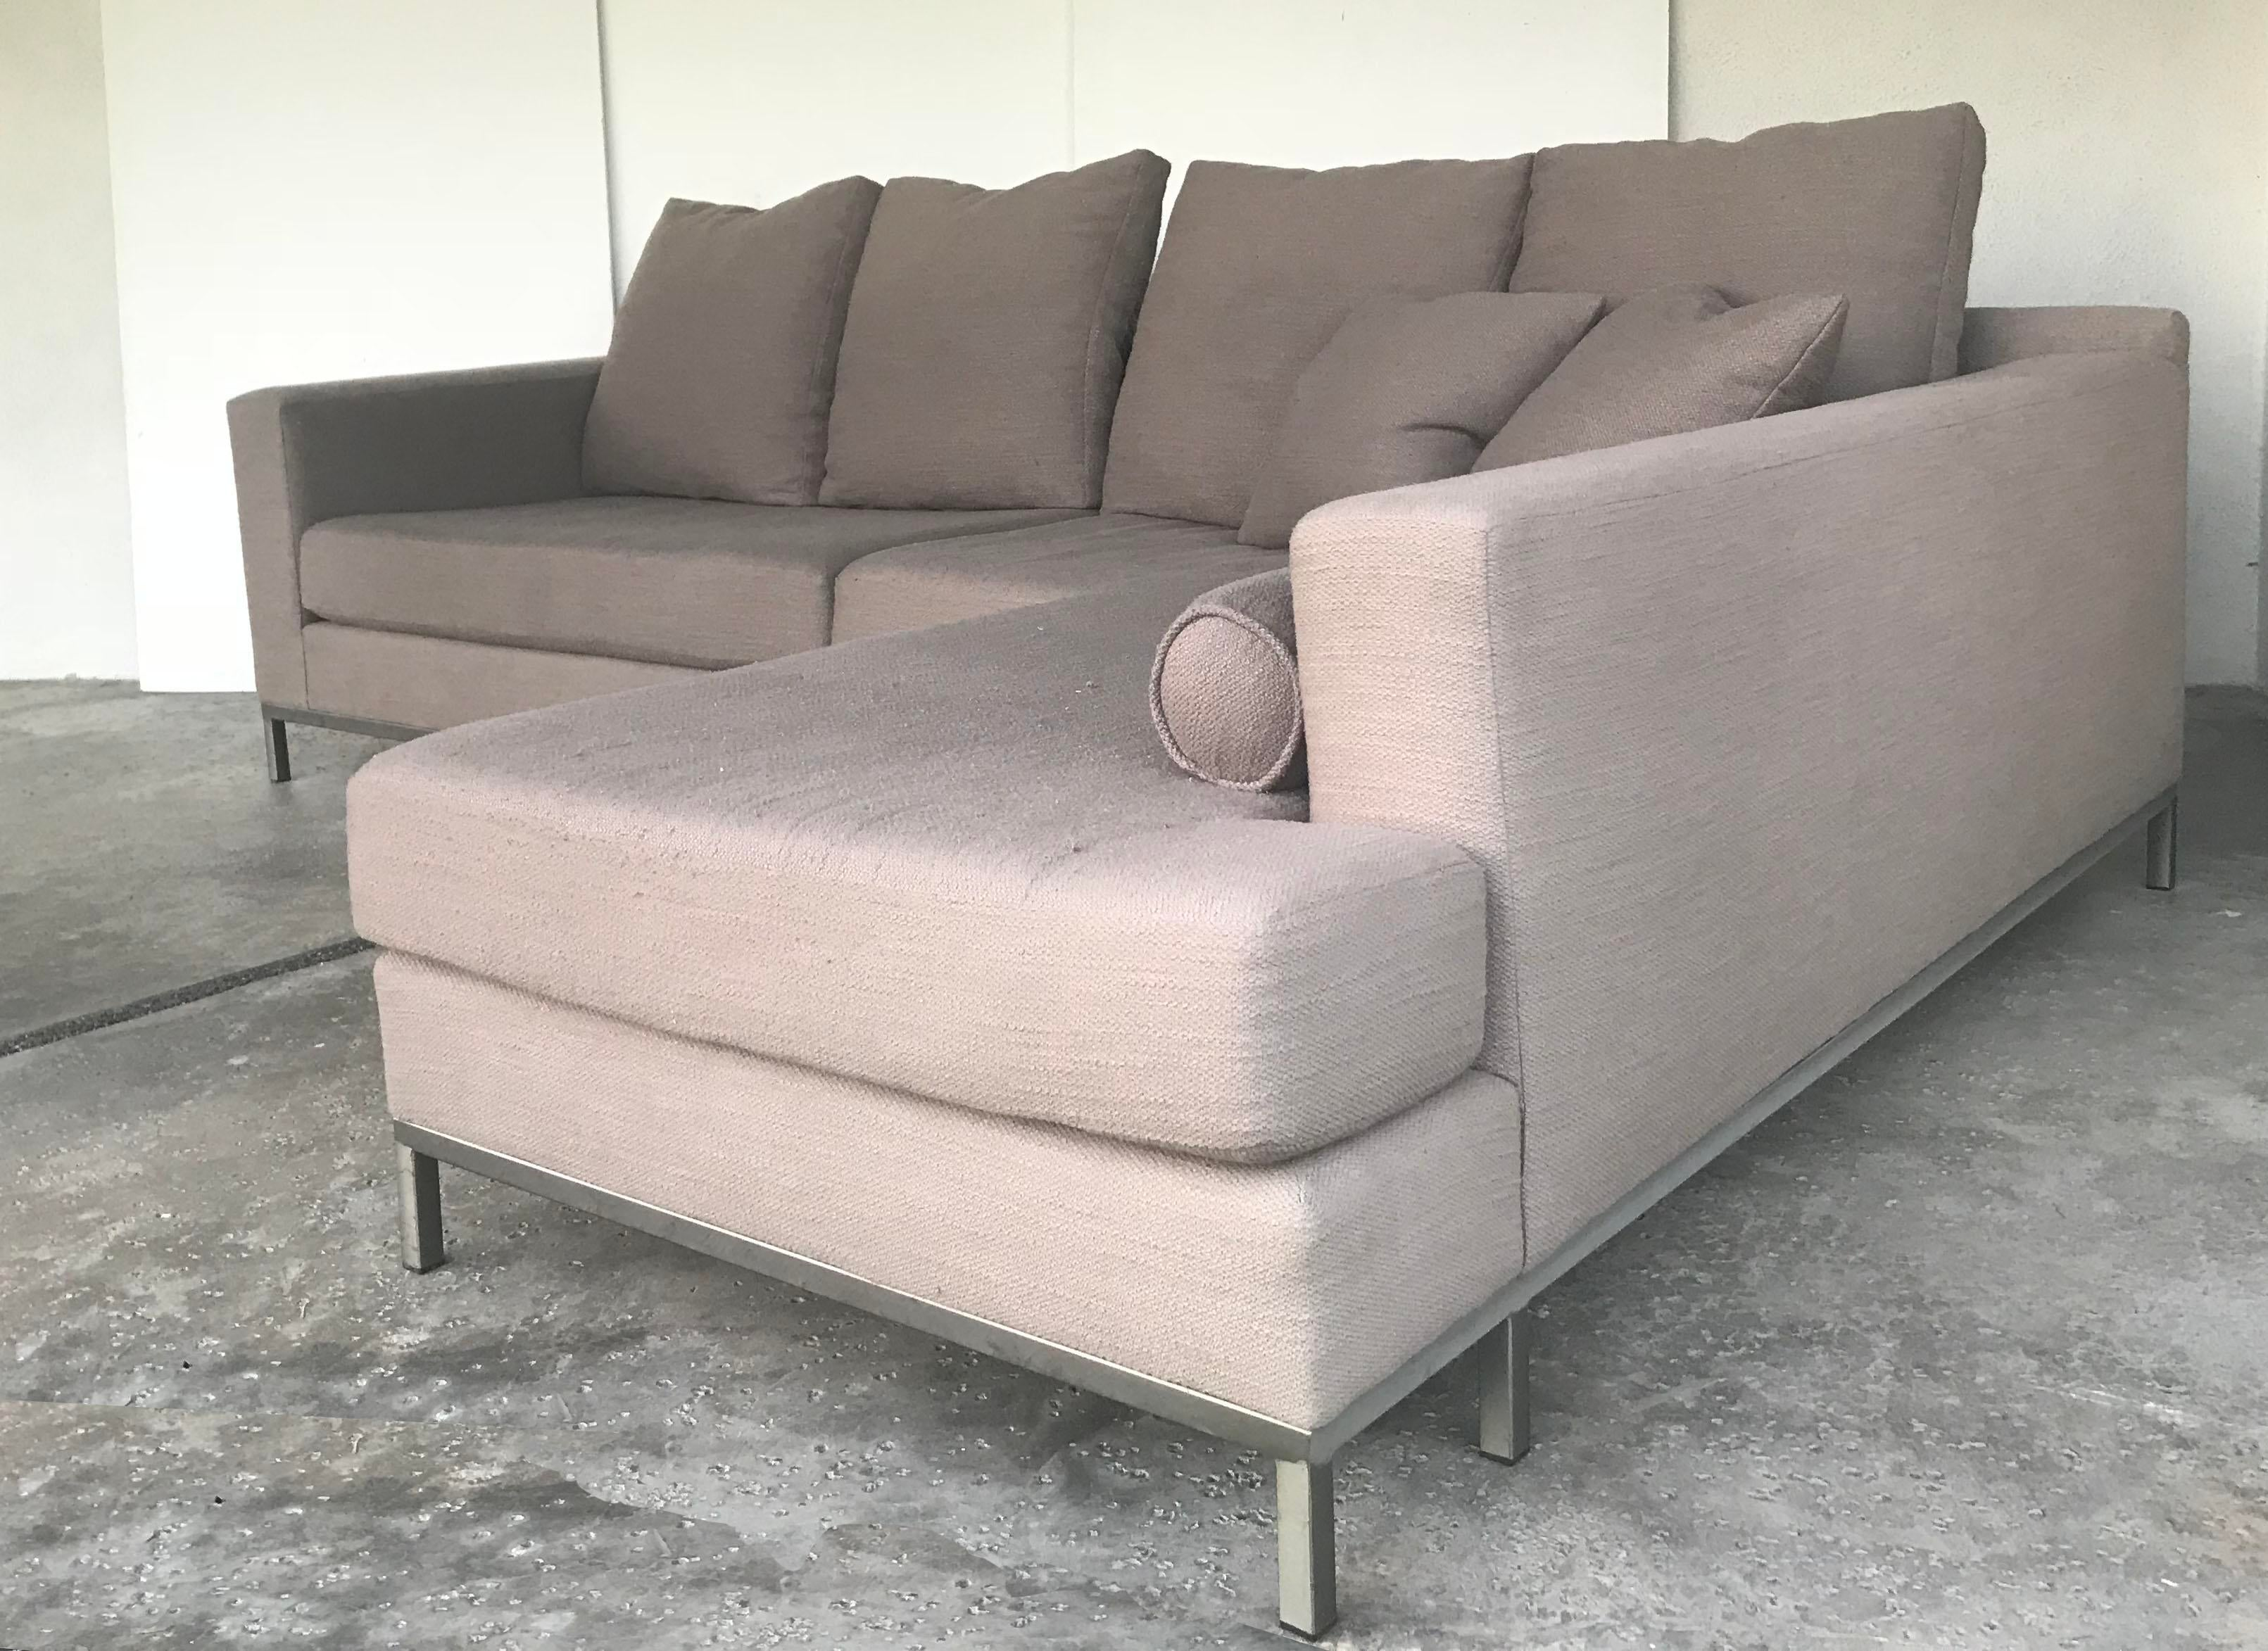 Minotti Style Modern 2 Piece Sectional Sofa Custom Made In Los Angeles.  TOTAL DIMENSIONS: